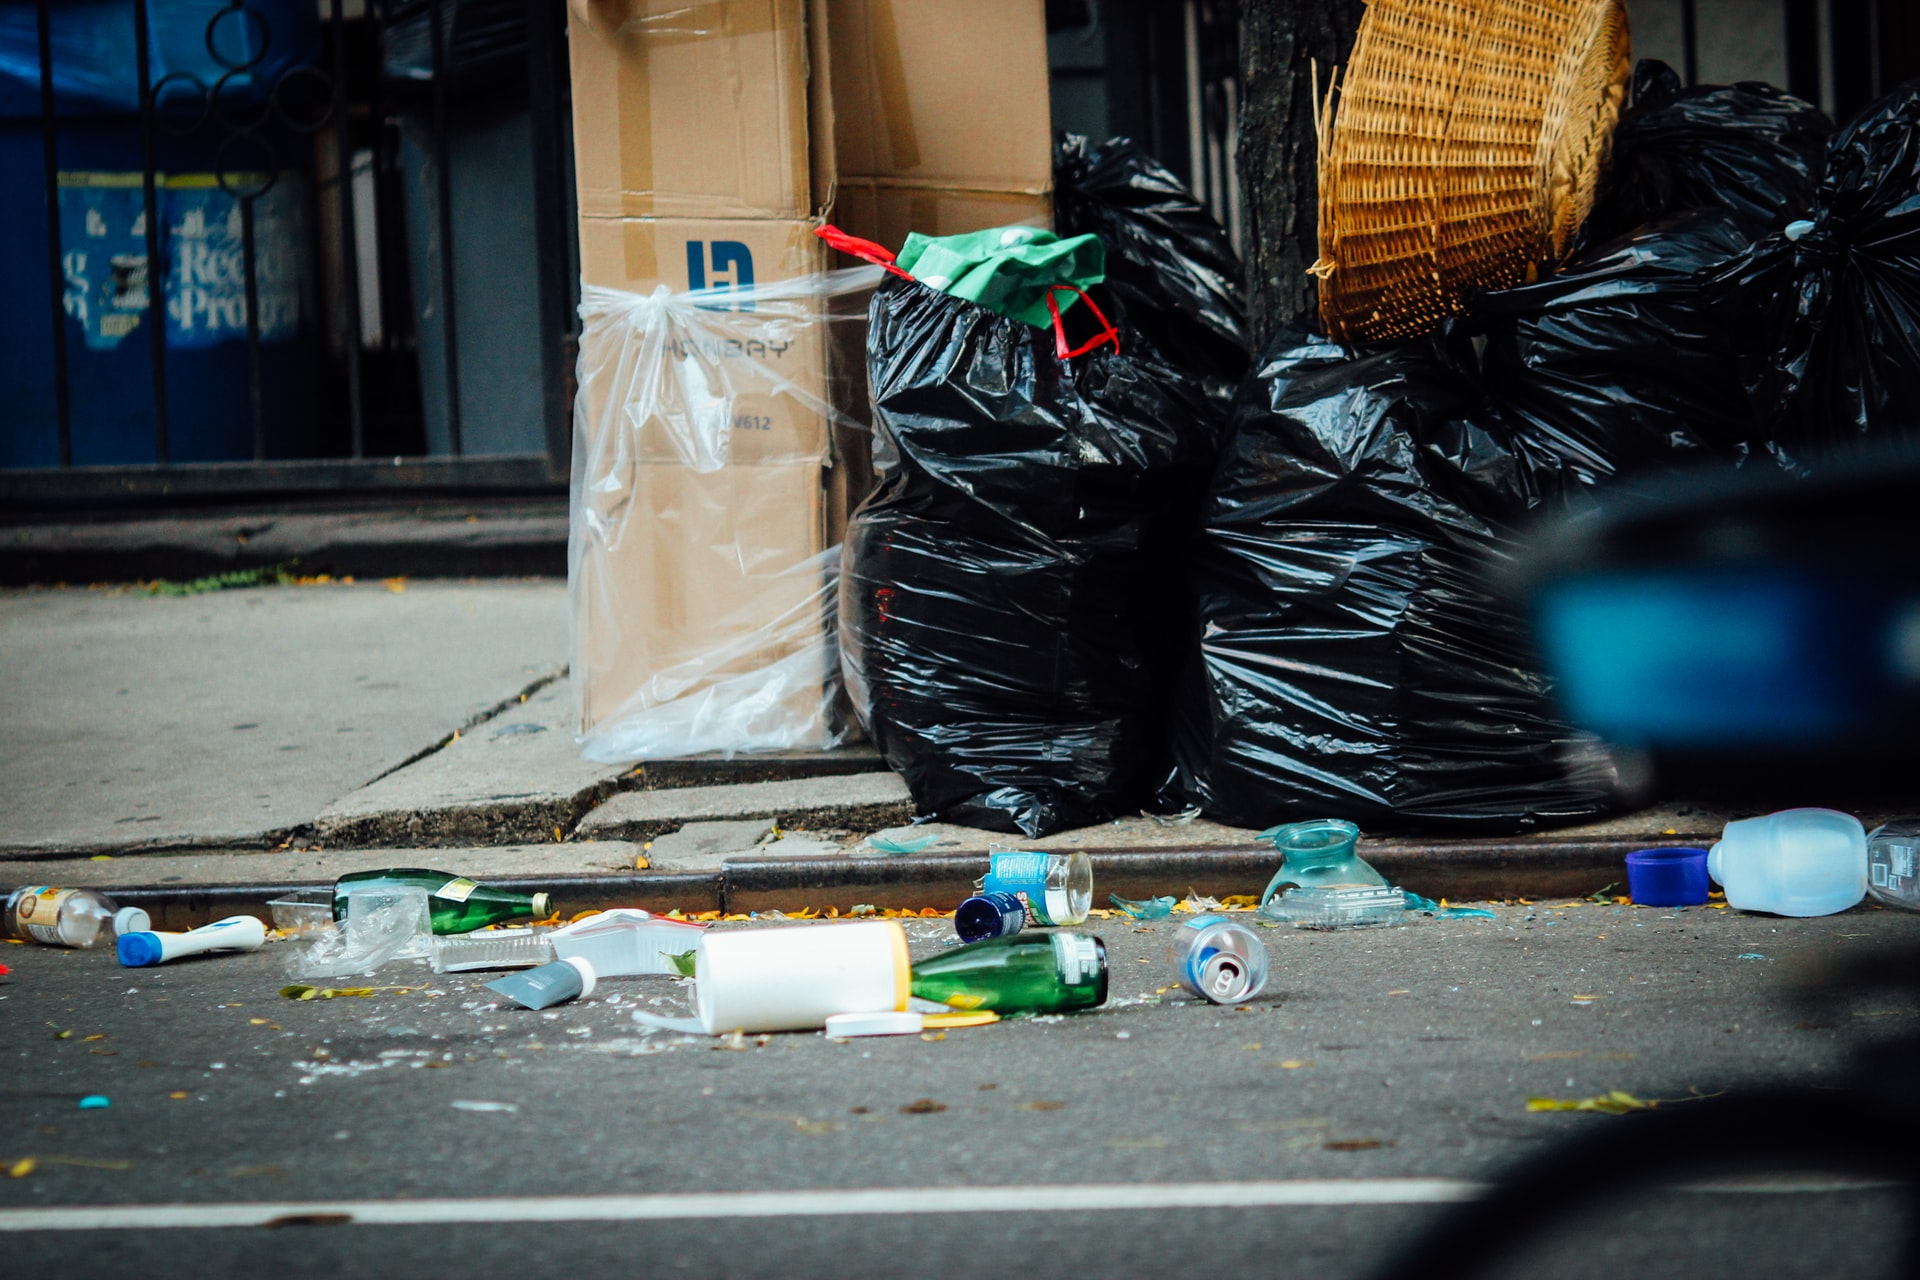 New 'Pesky Blighters' fly tipping campaign launches in Spring